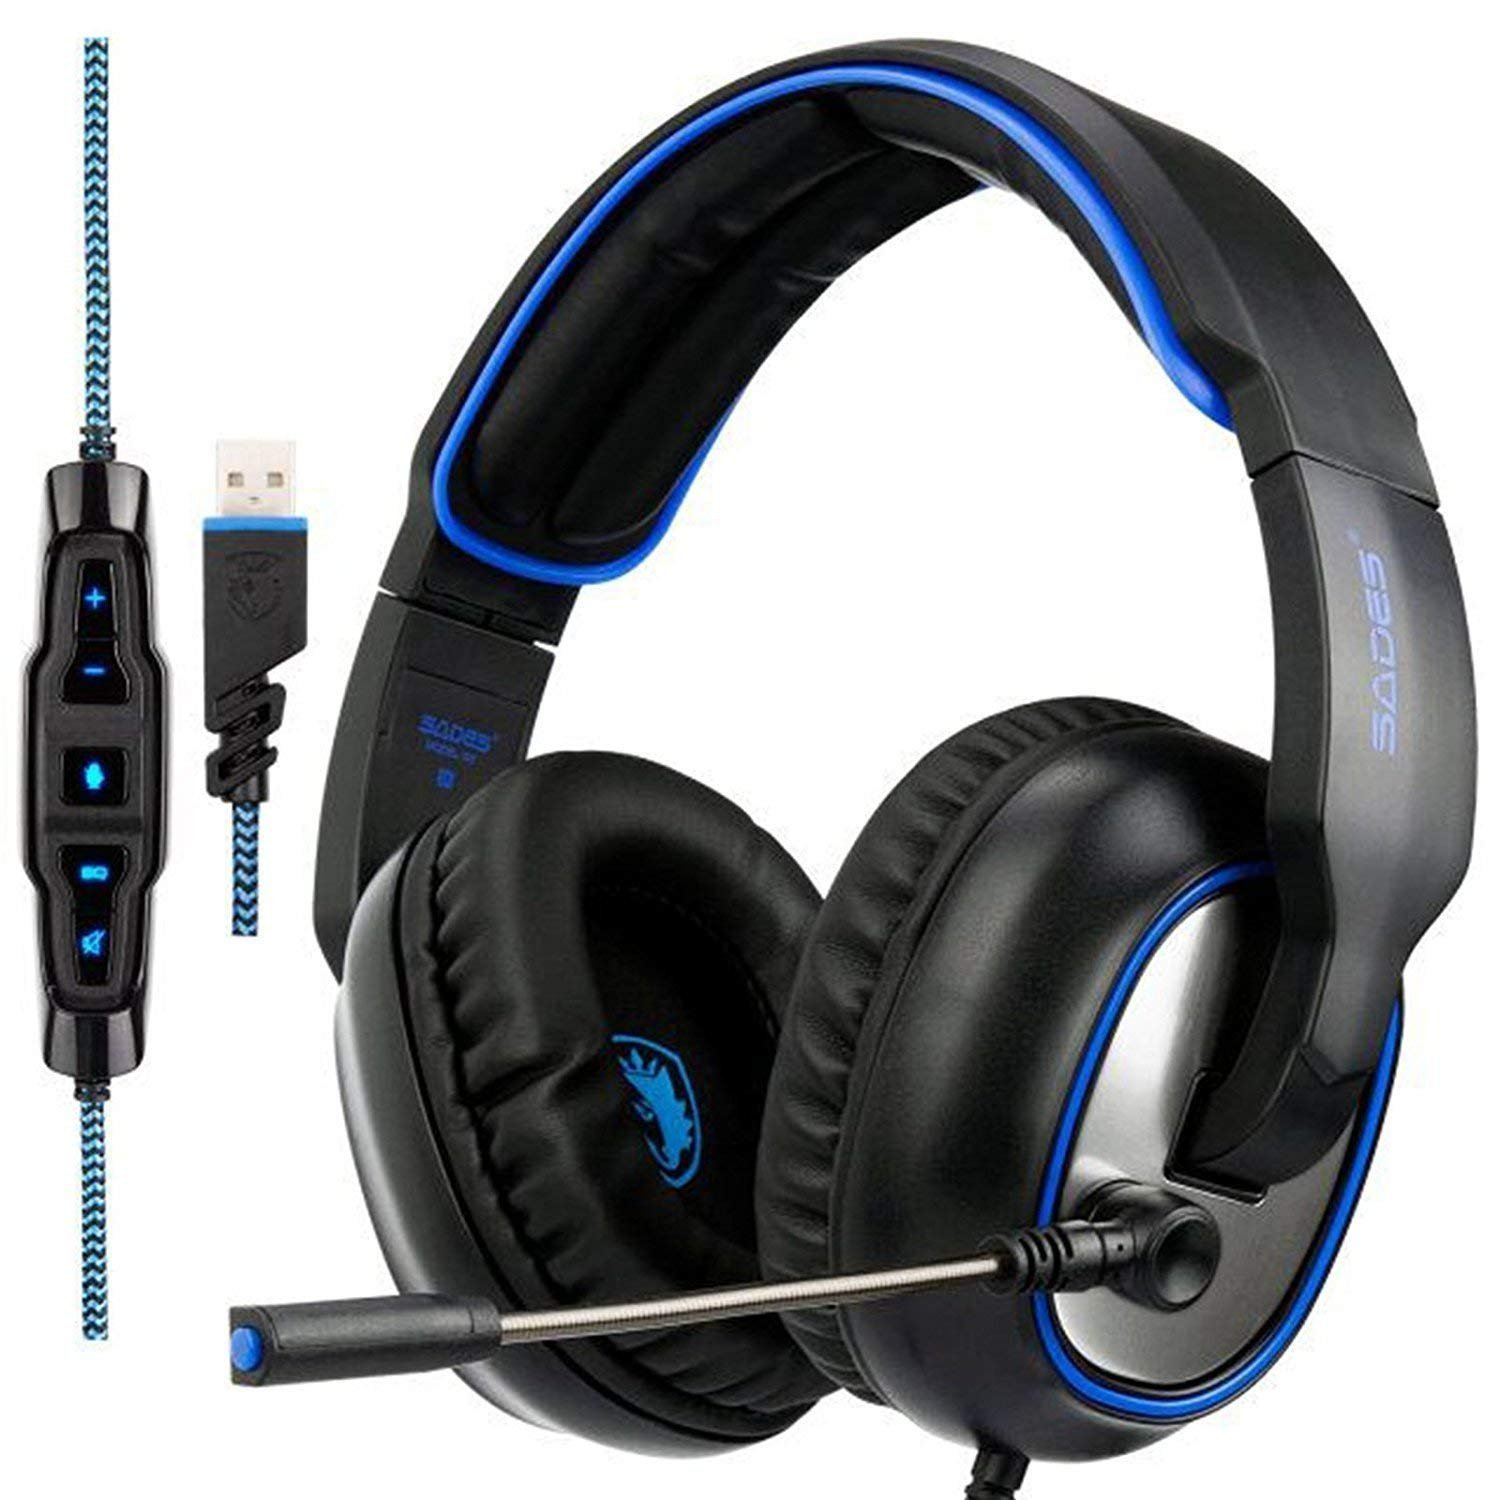 GW Sades R7 Virtual 7.1 Channel Surround Sound Gaming Headset, USB Wired Over Ear Headphones with Microphone&EQ Mode&Noise Cancelling&in-line Volume Control&LED for PC PS4 Mac(Black&Blue)